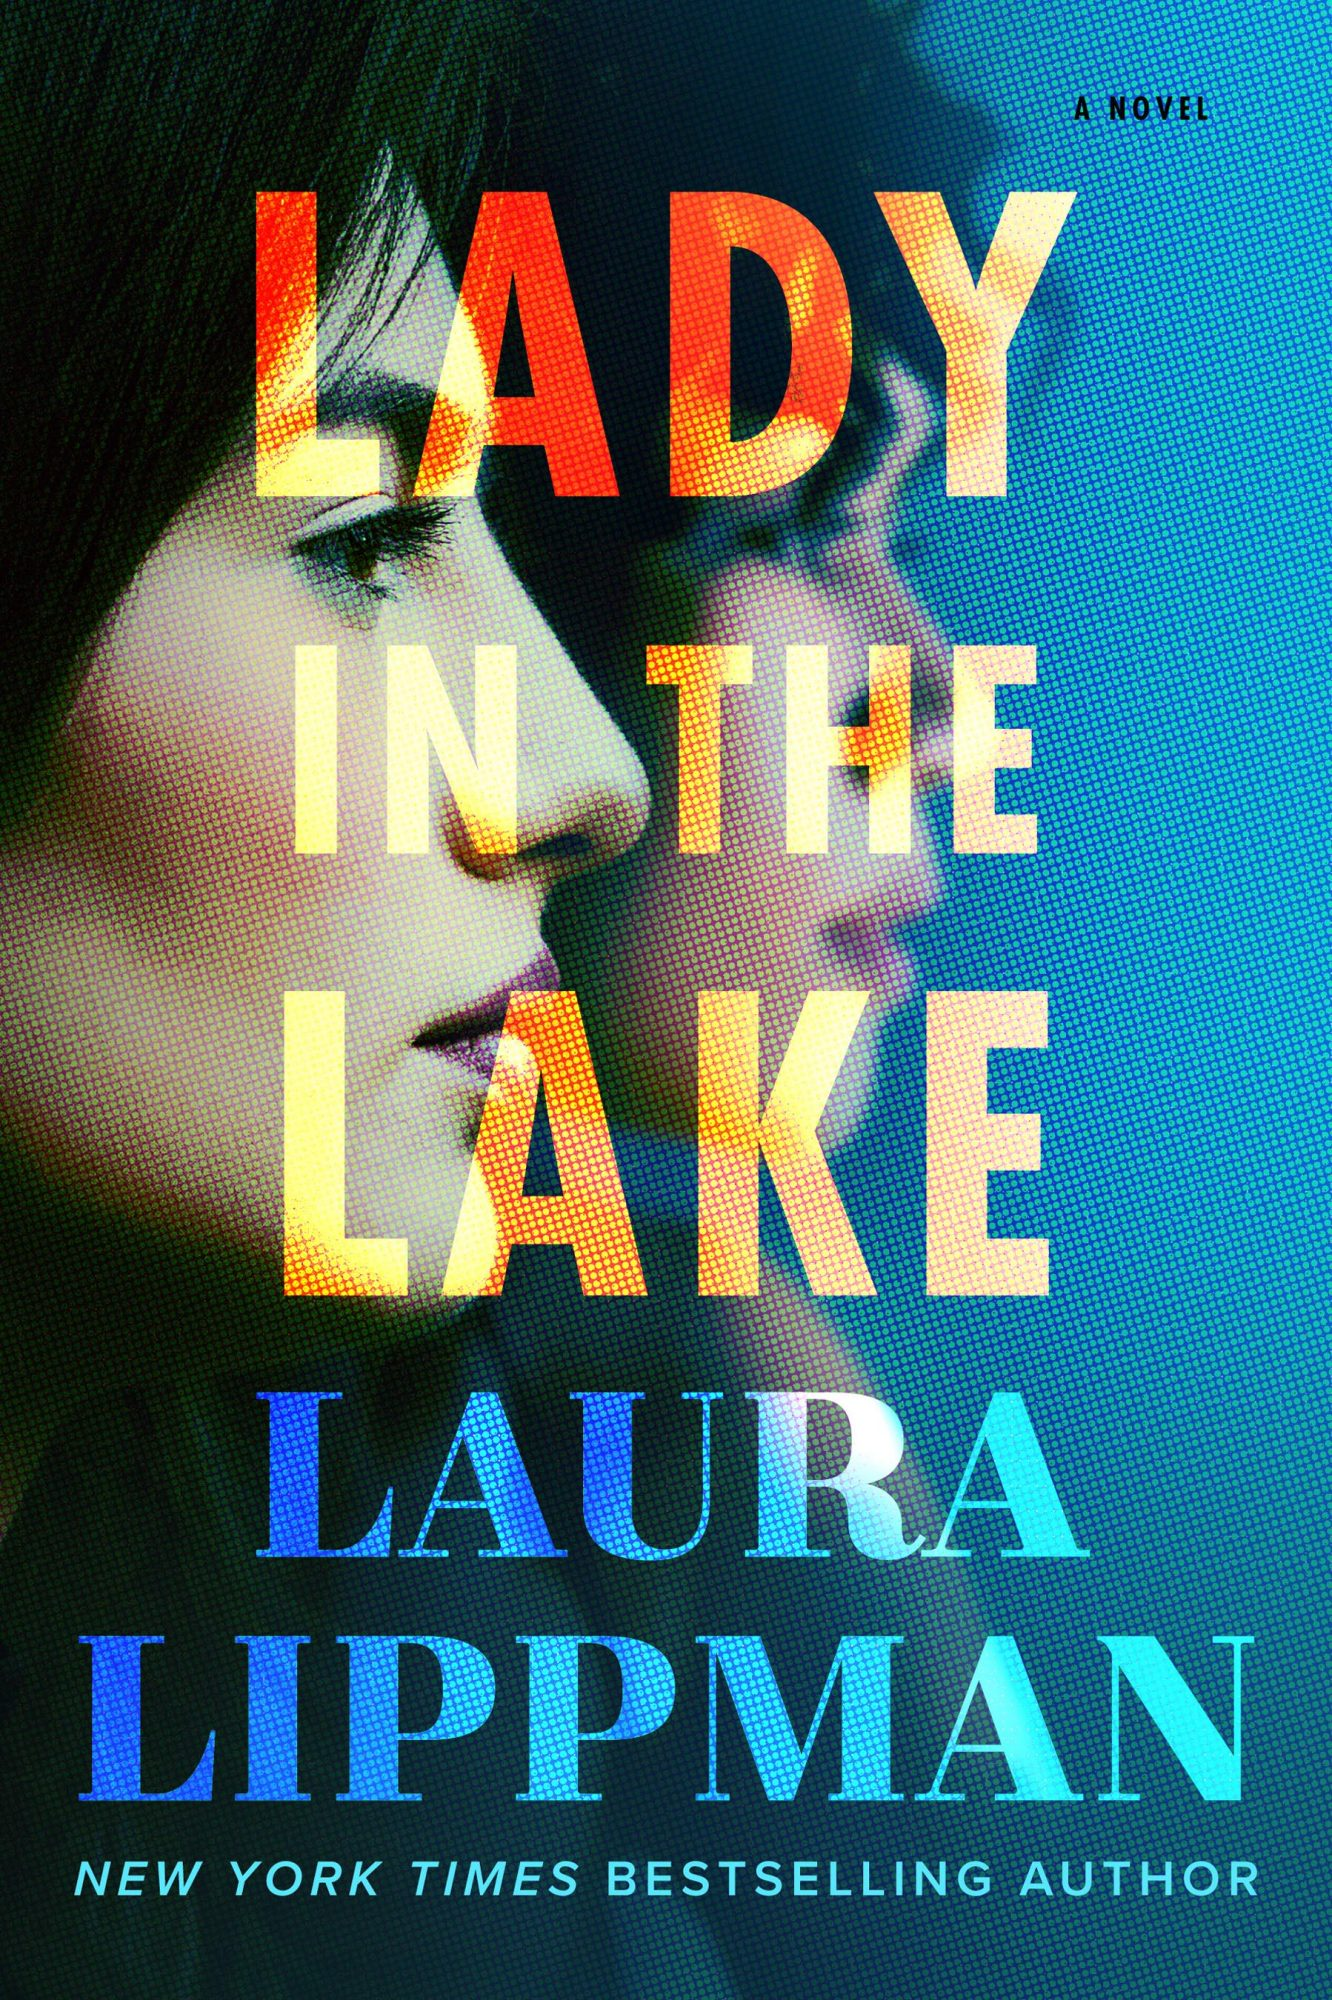 Lady In The Lake (2019)Author: Laura Lippman